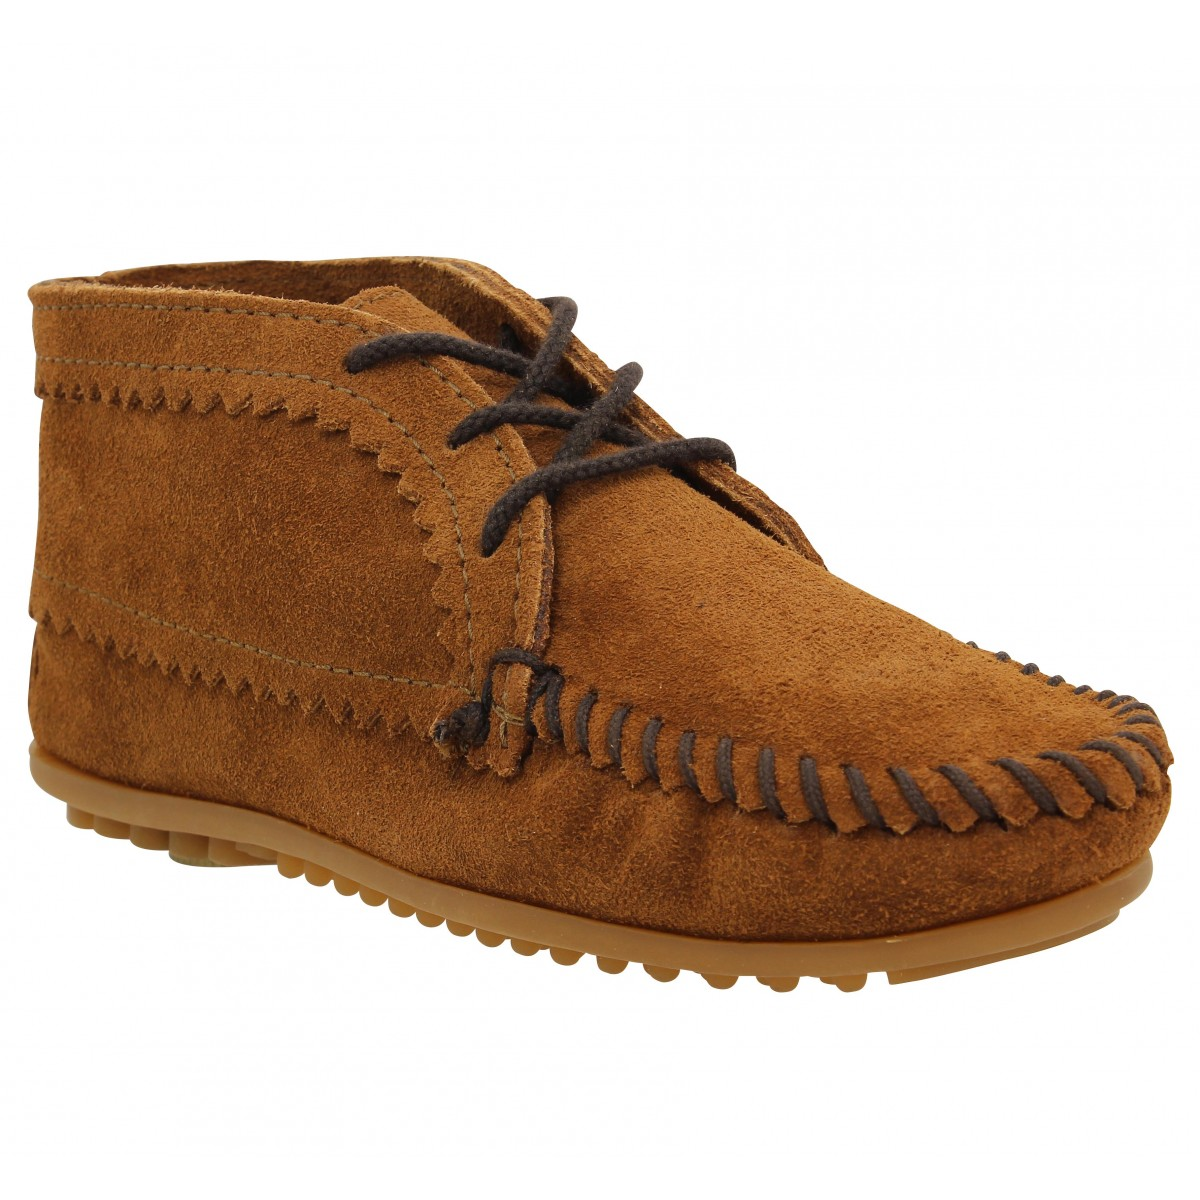 Minnetonka Marque Suede Ankle Boot...